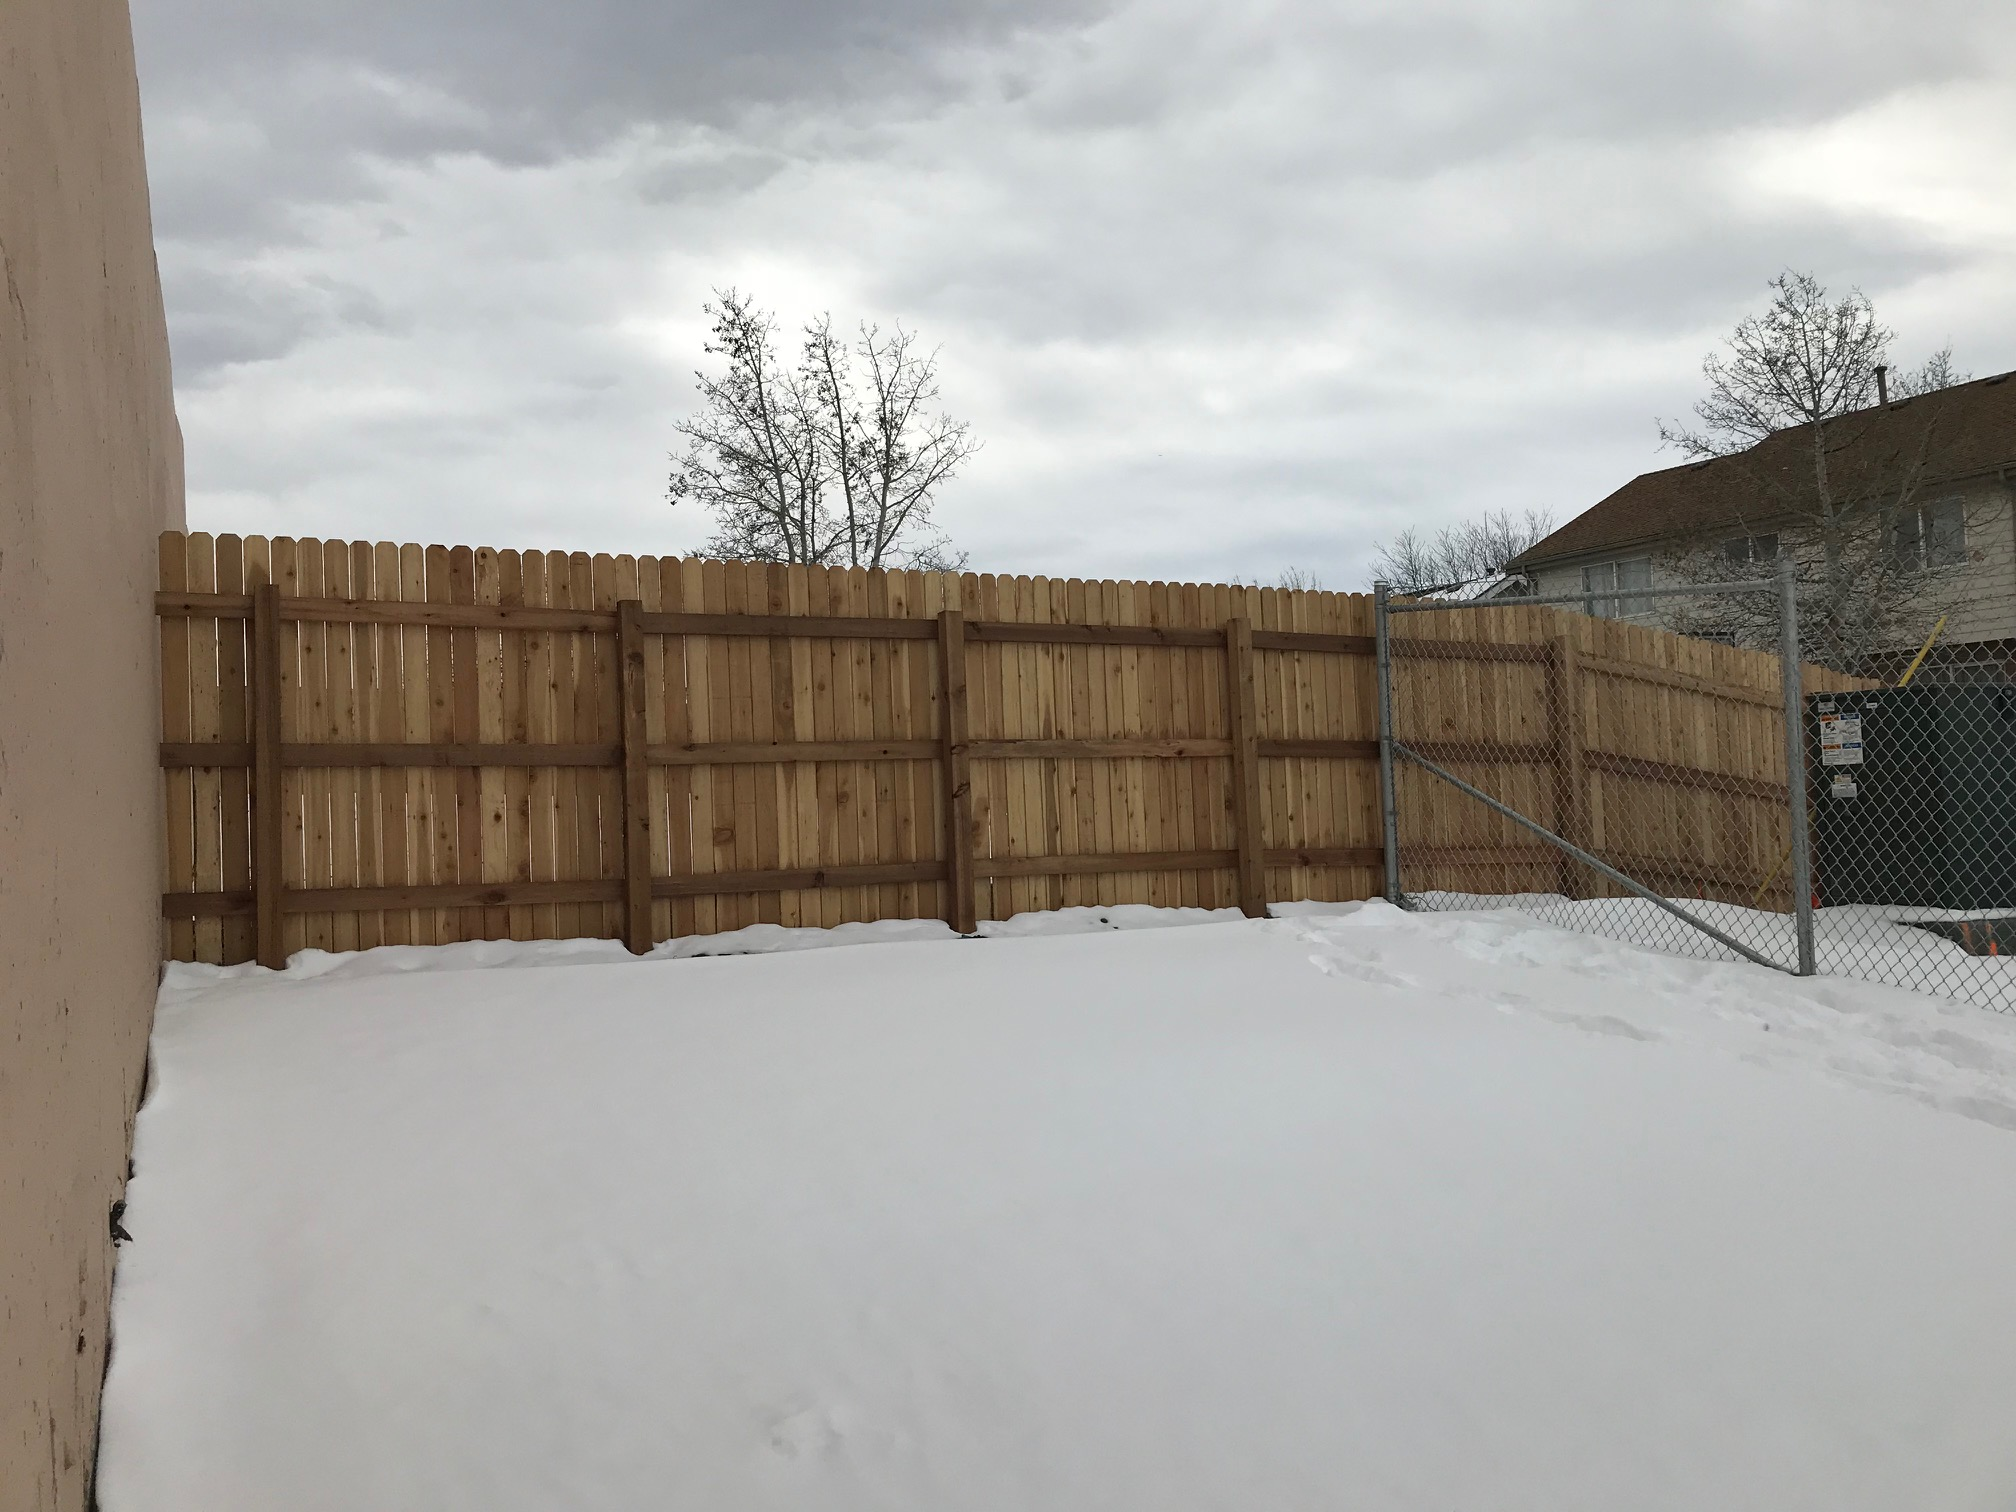 New Backyard Fence for Acoma Street Residents